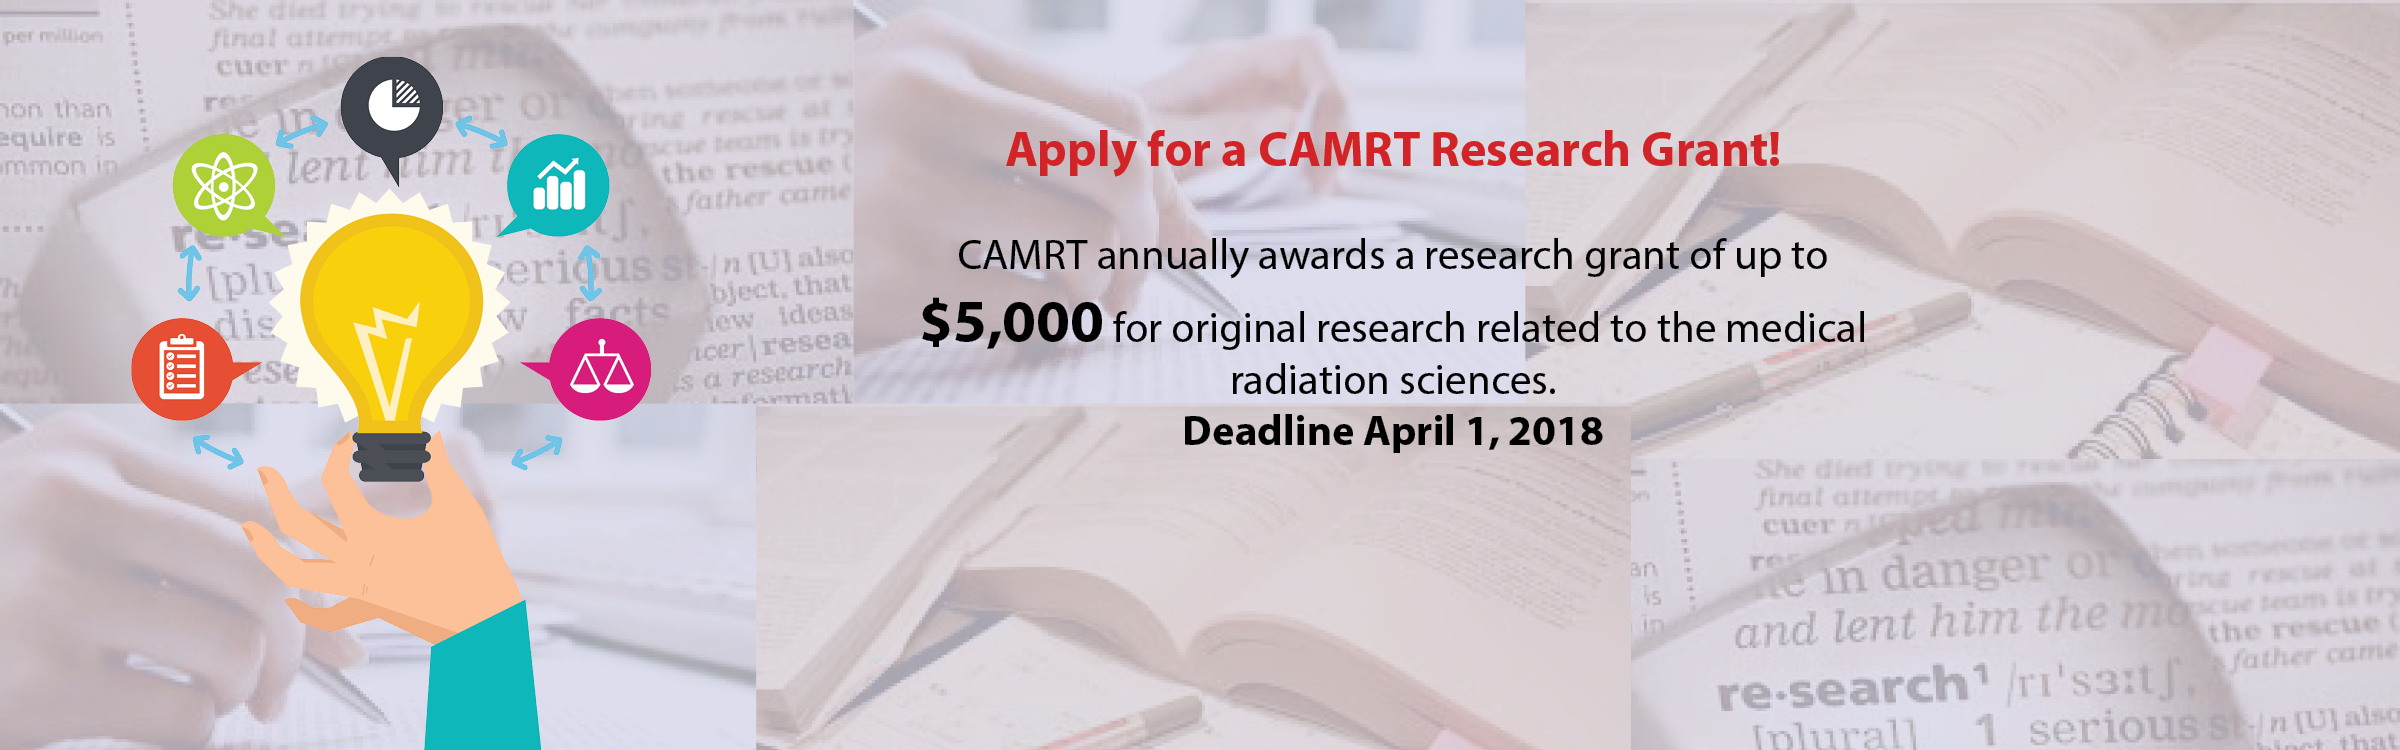 Research-Grant-Banner_English-v4